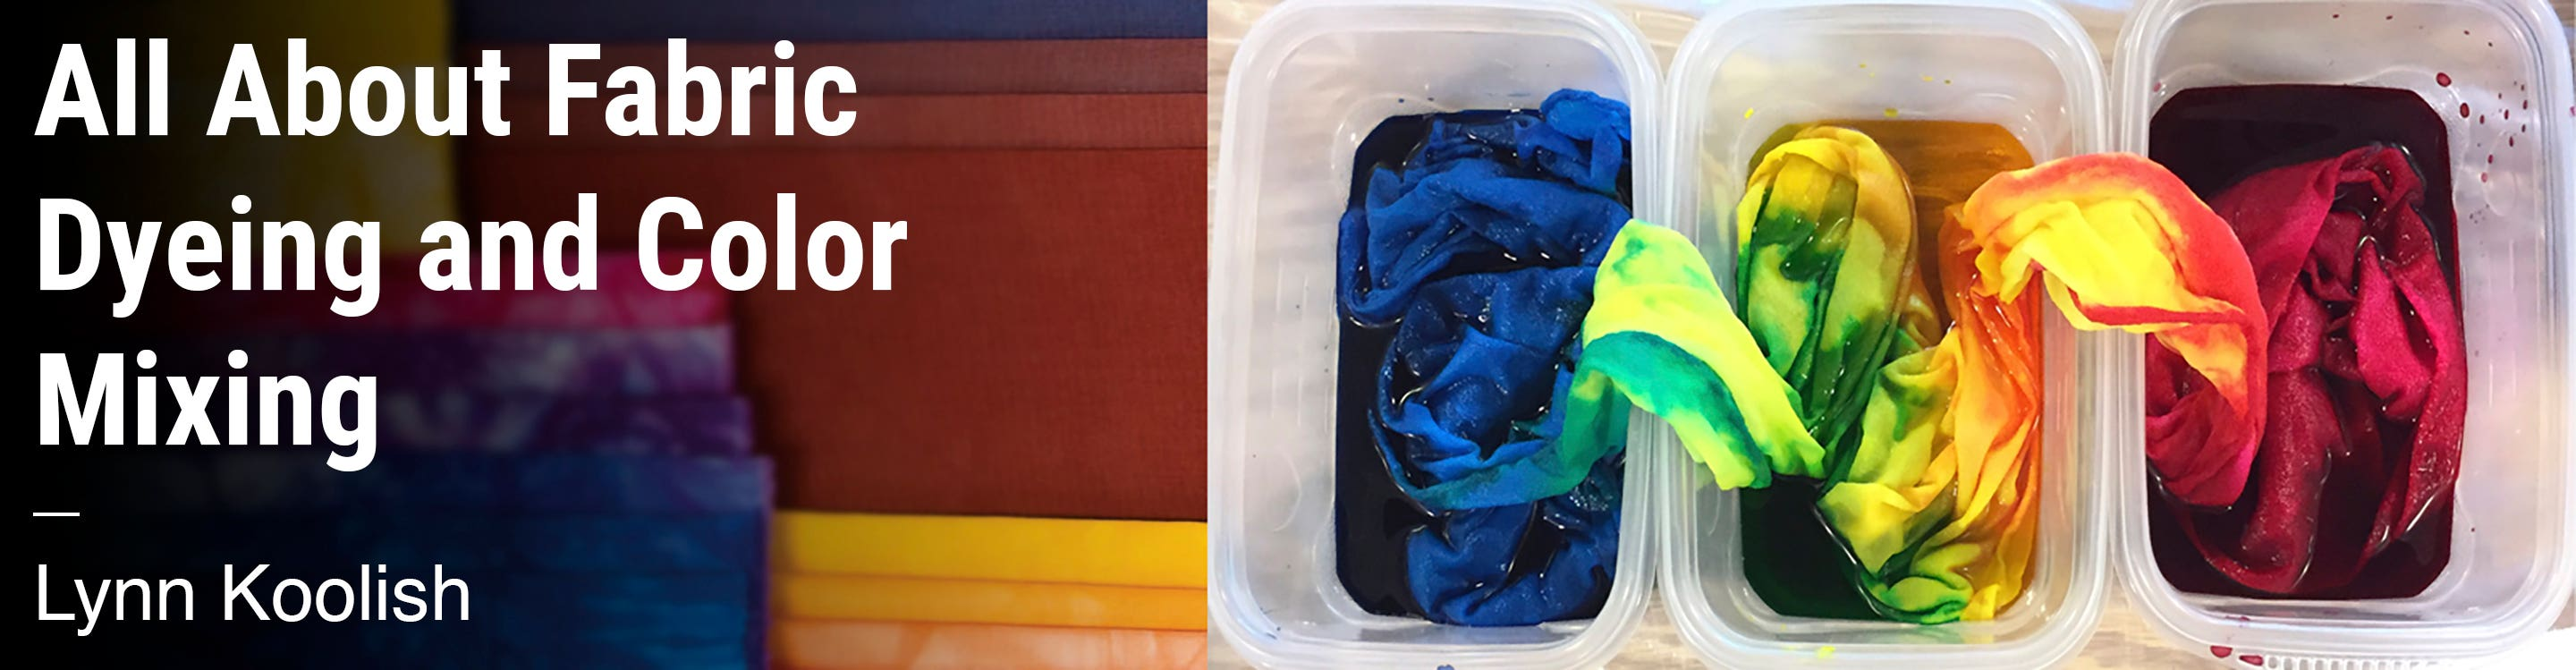 All About Fabric Dyeing and Color Mixing Lynn Koolish